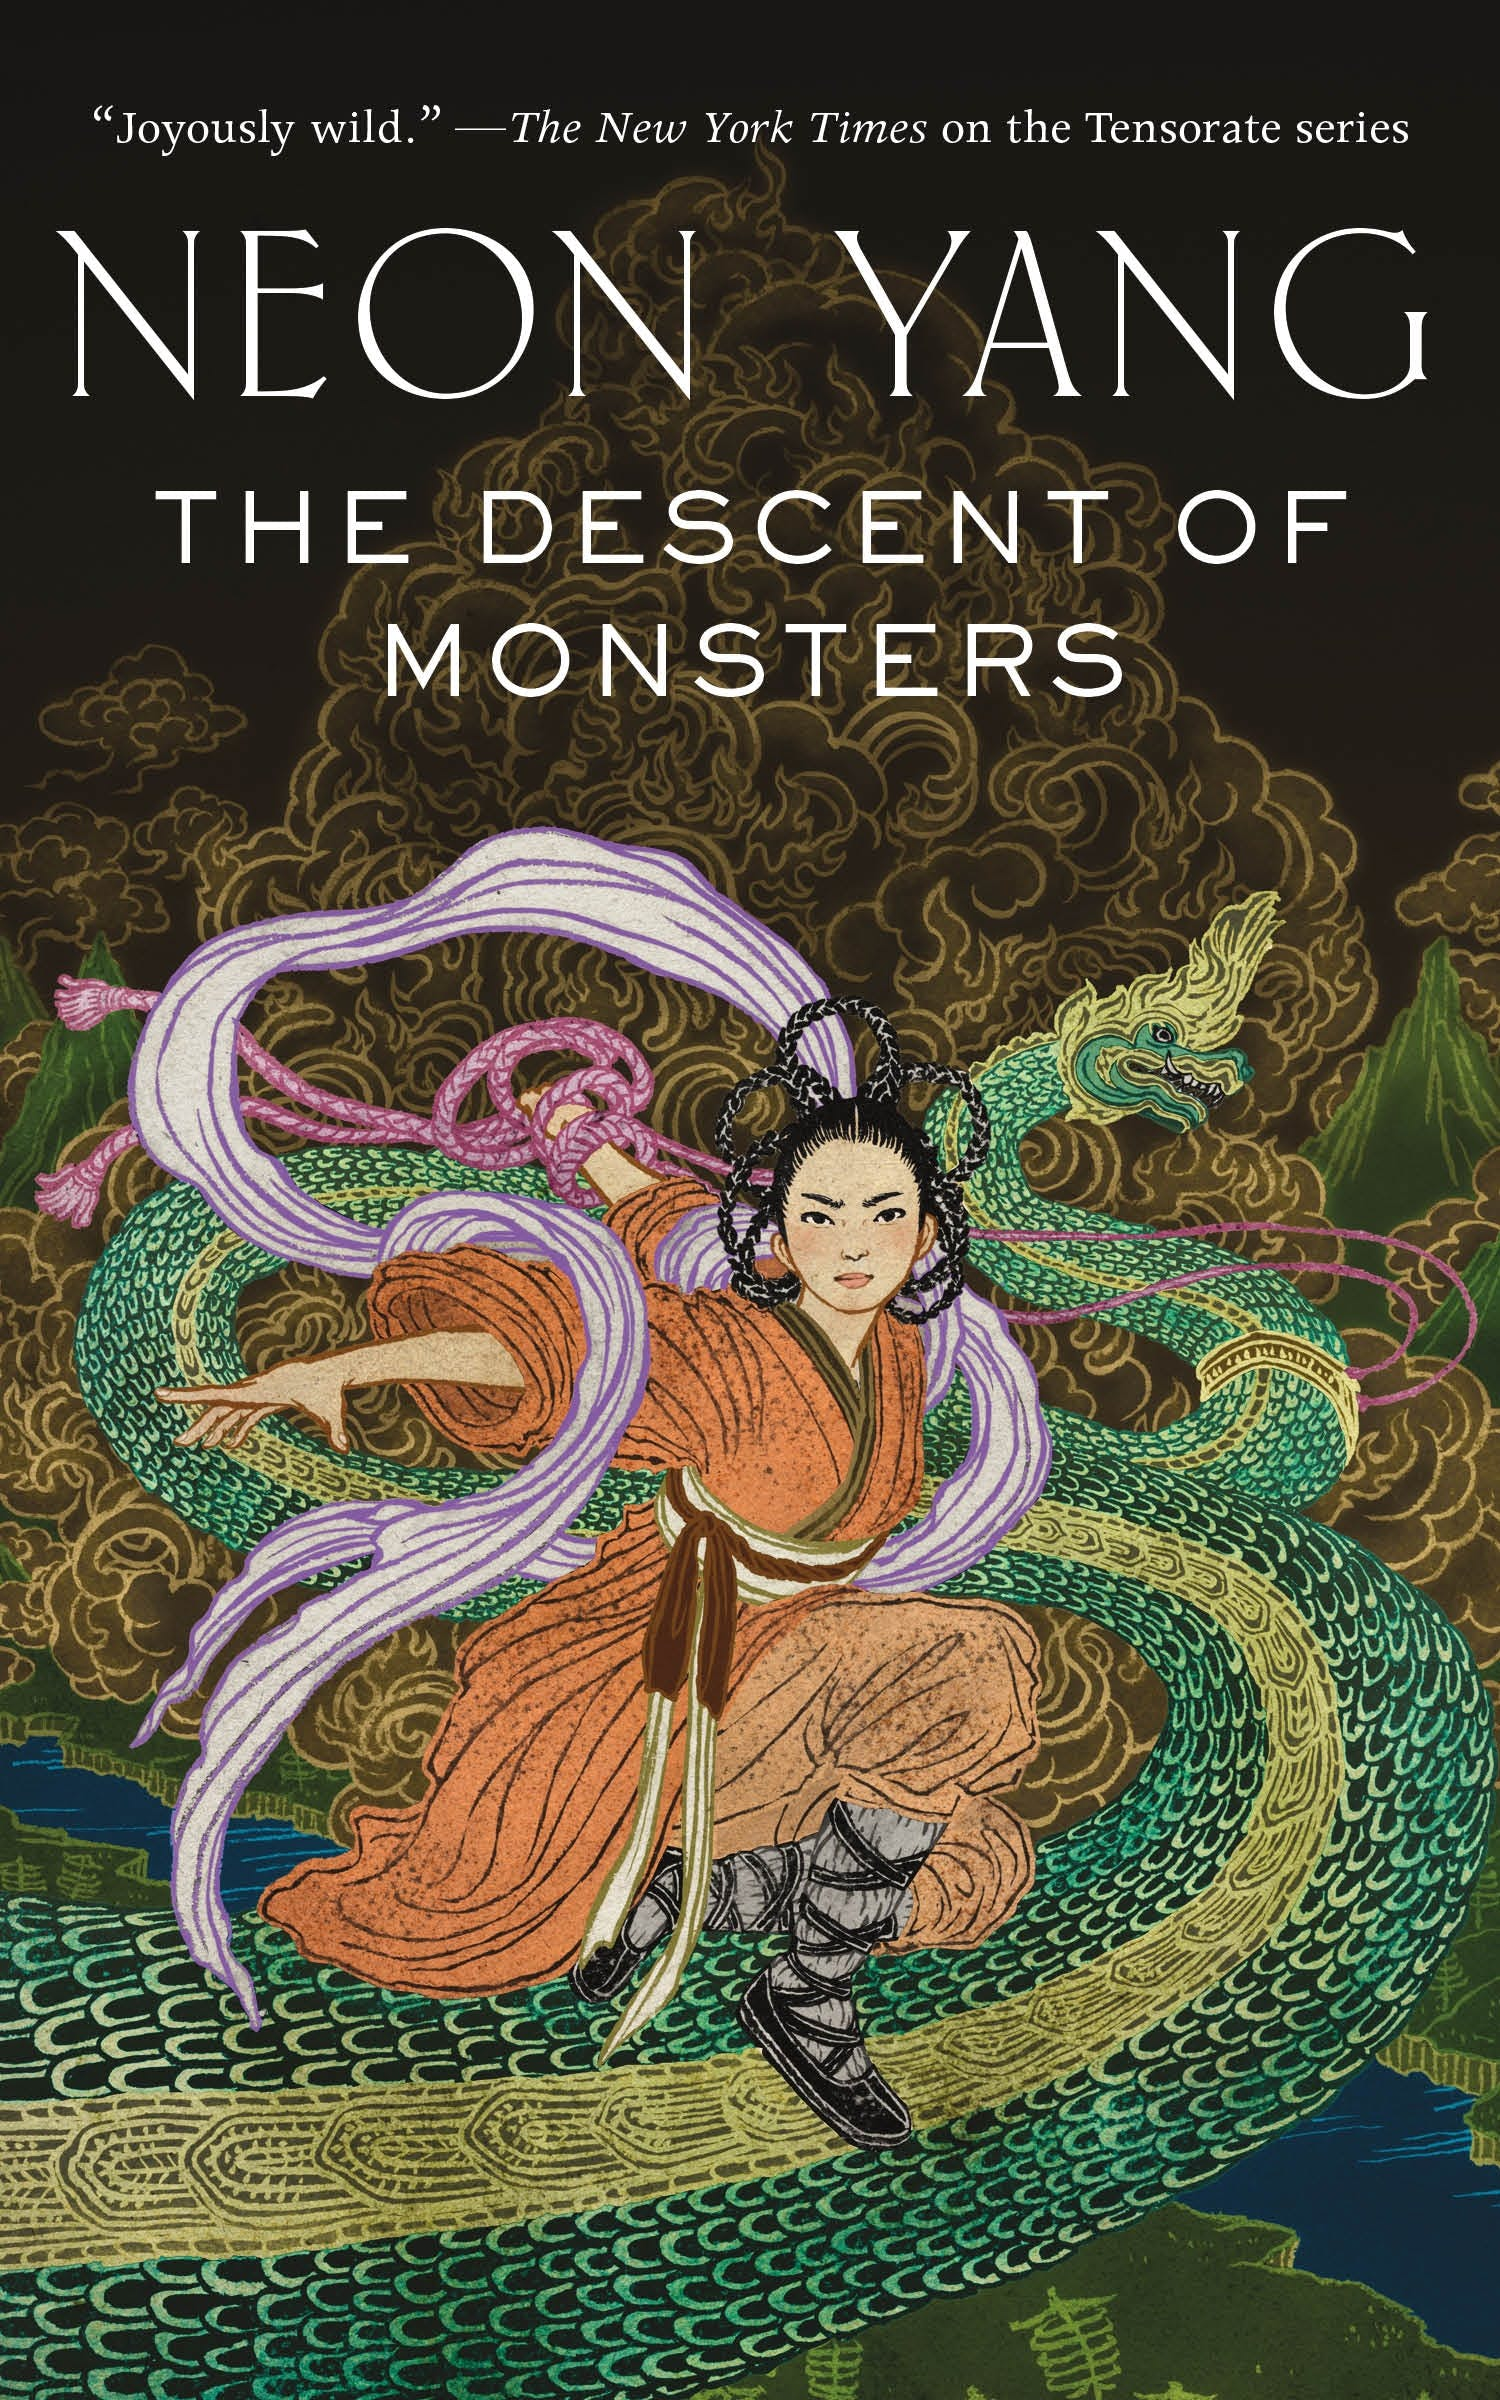 Image of The Descent of Monsters